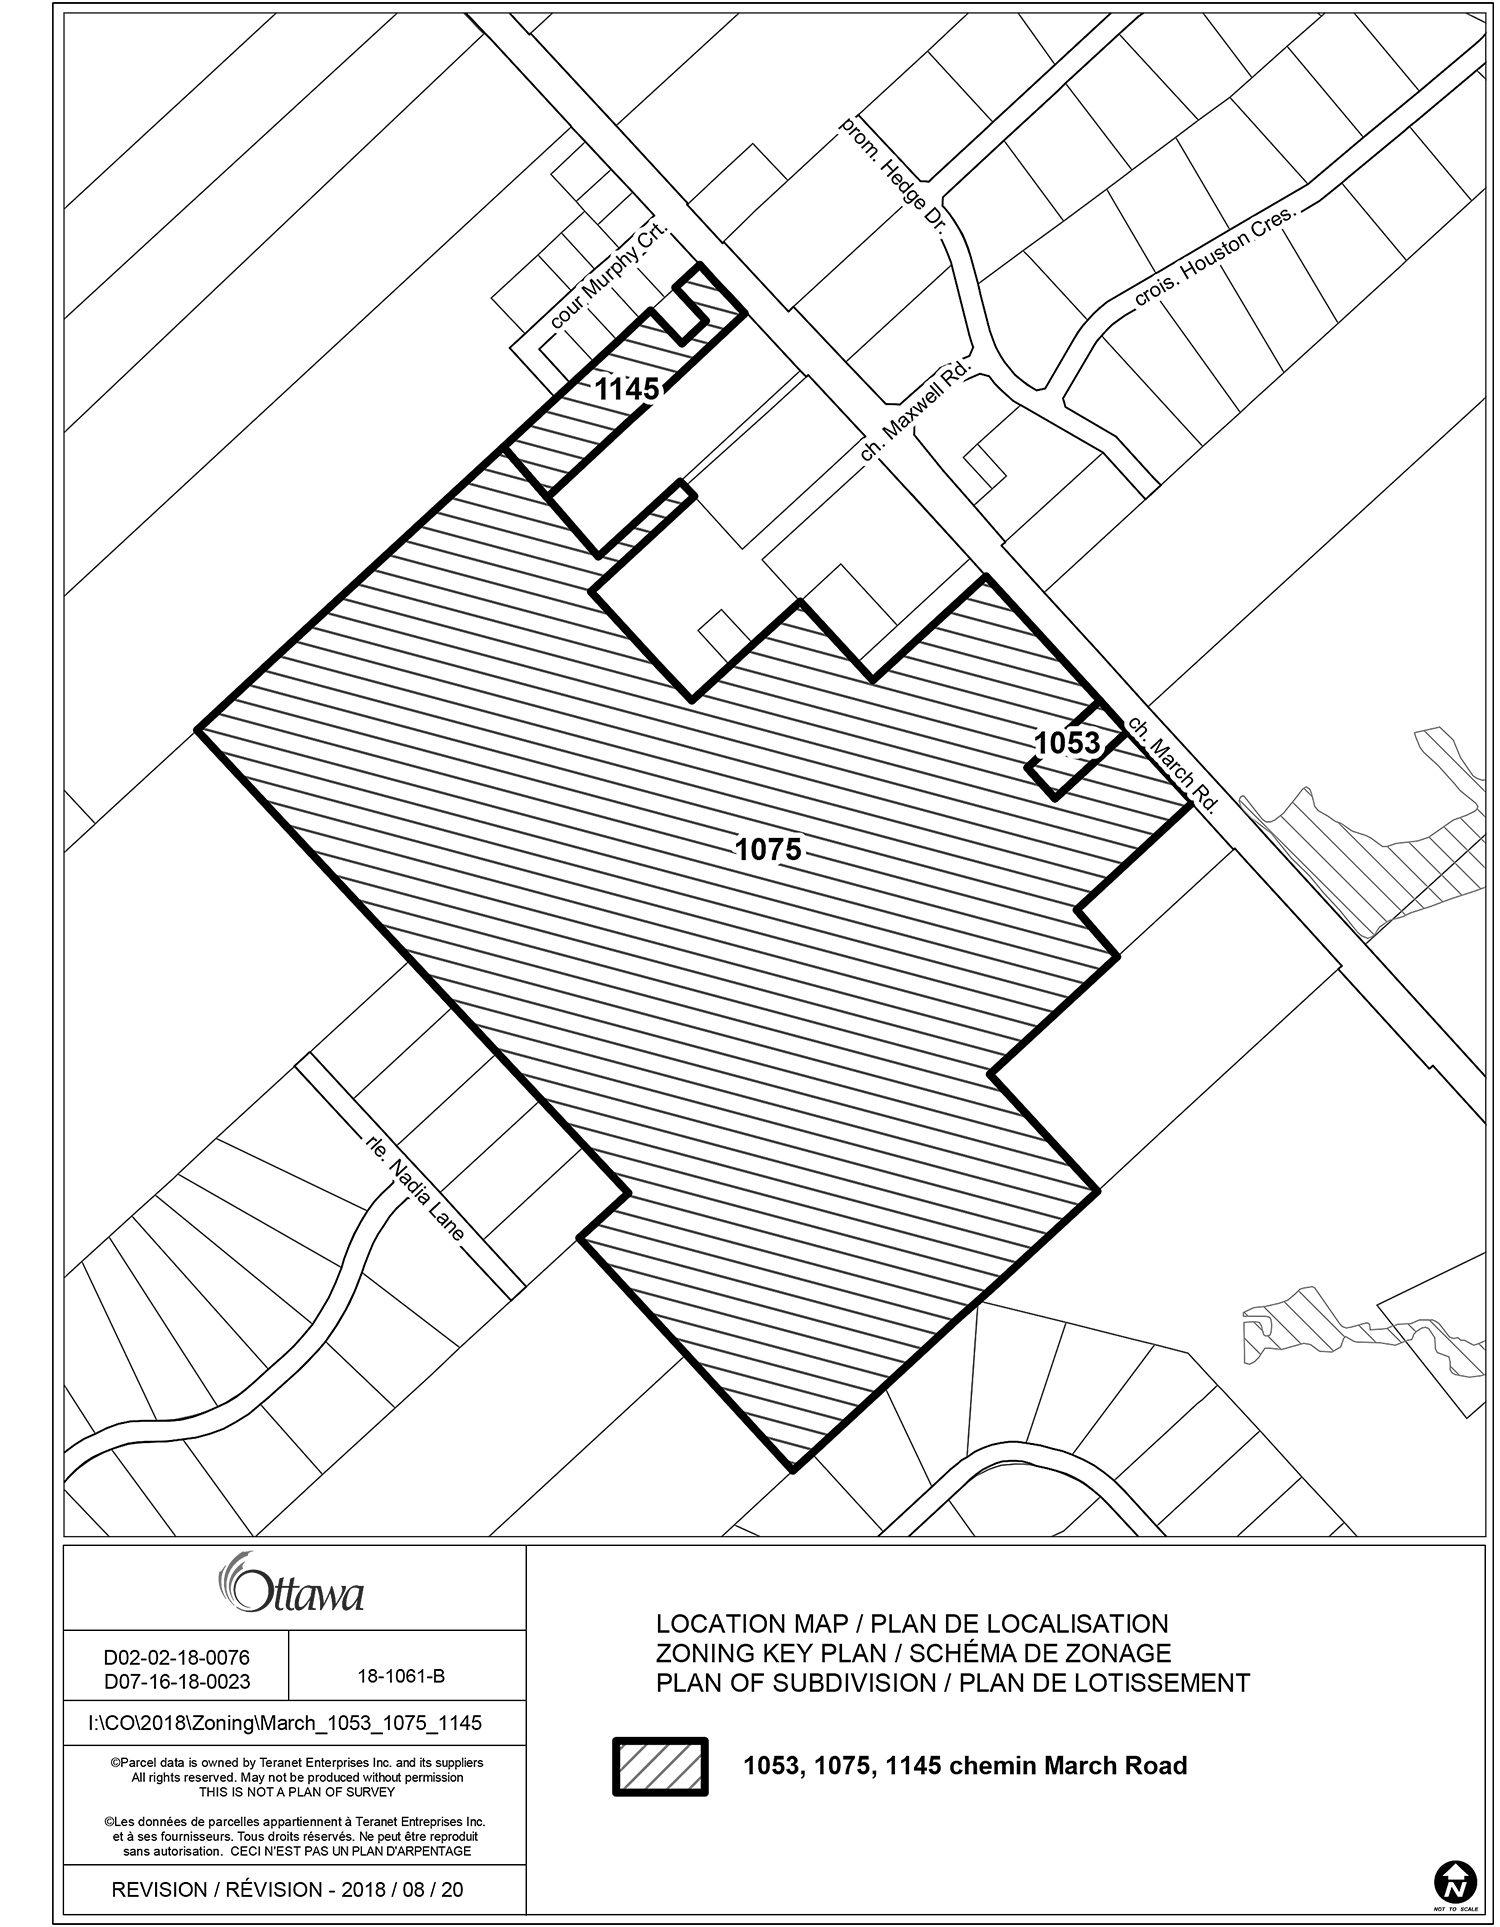 The west side development area (click the link at the bottom of the story for more information).